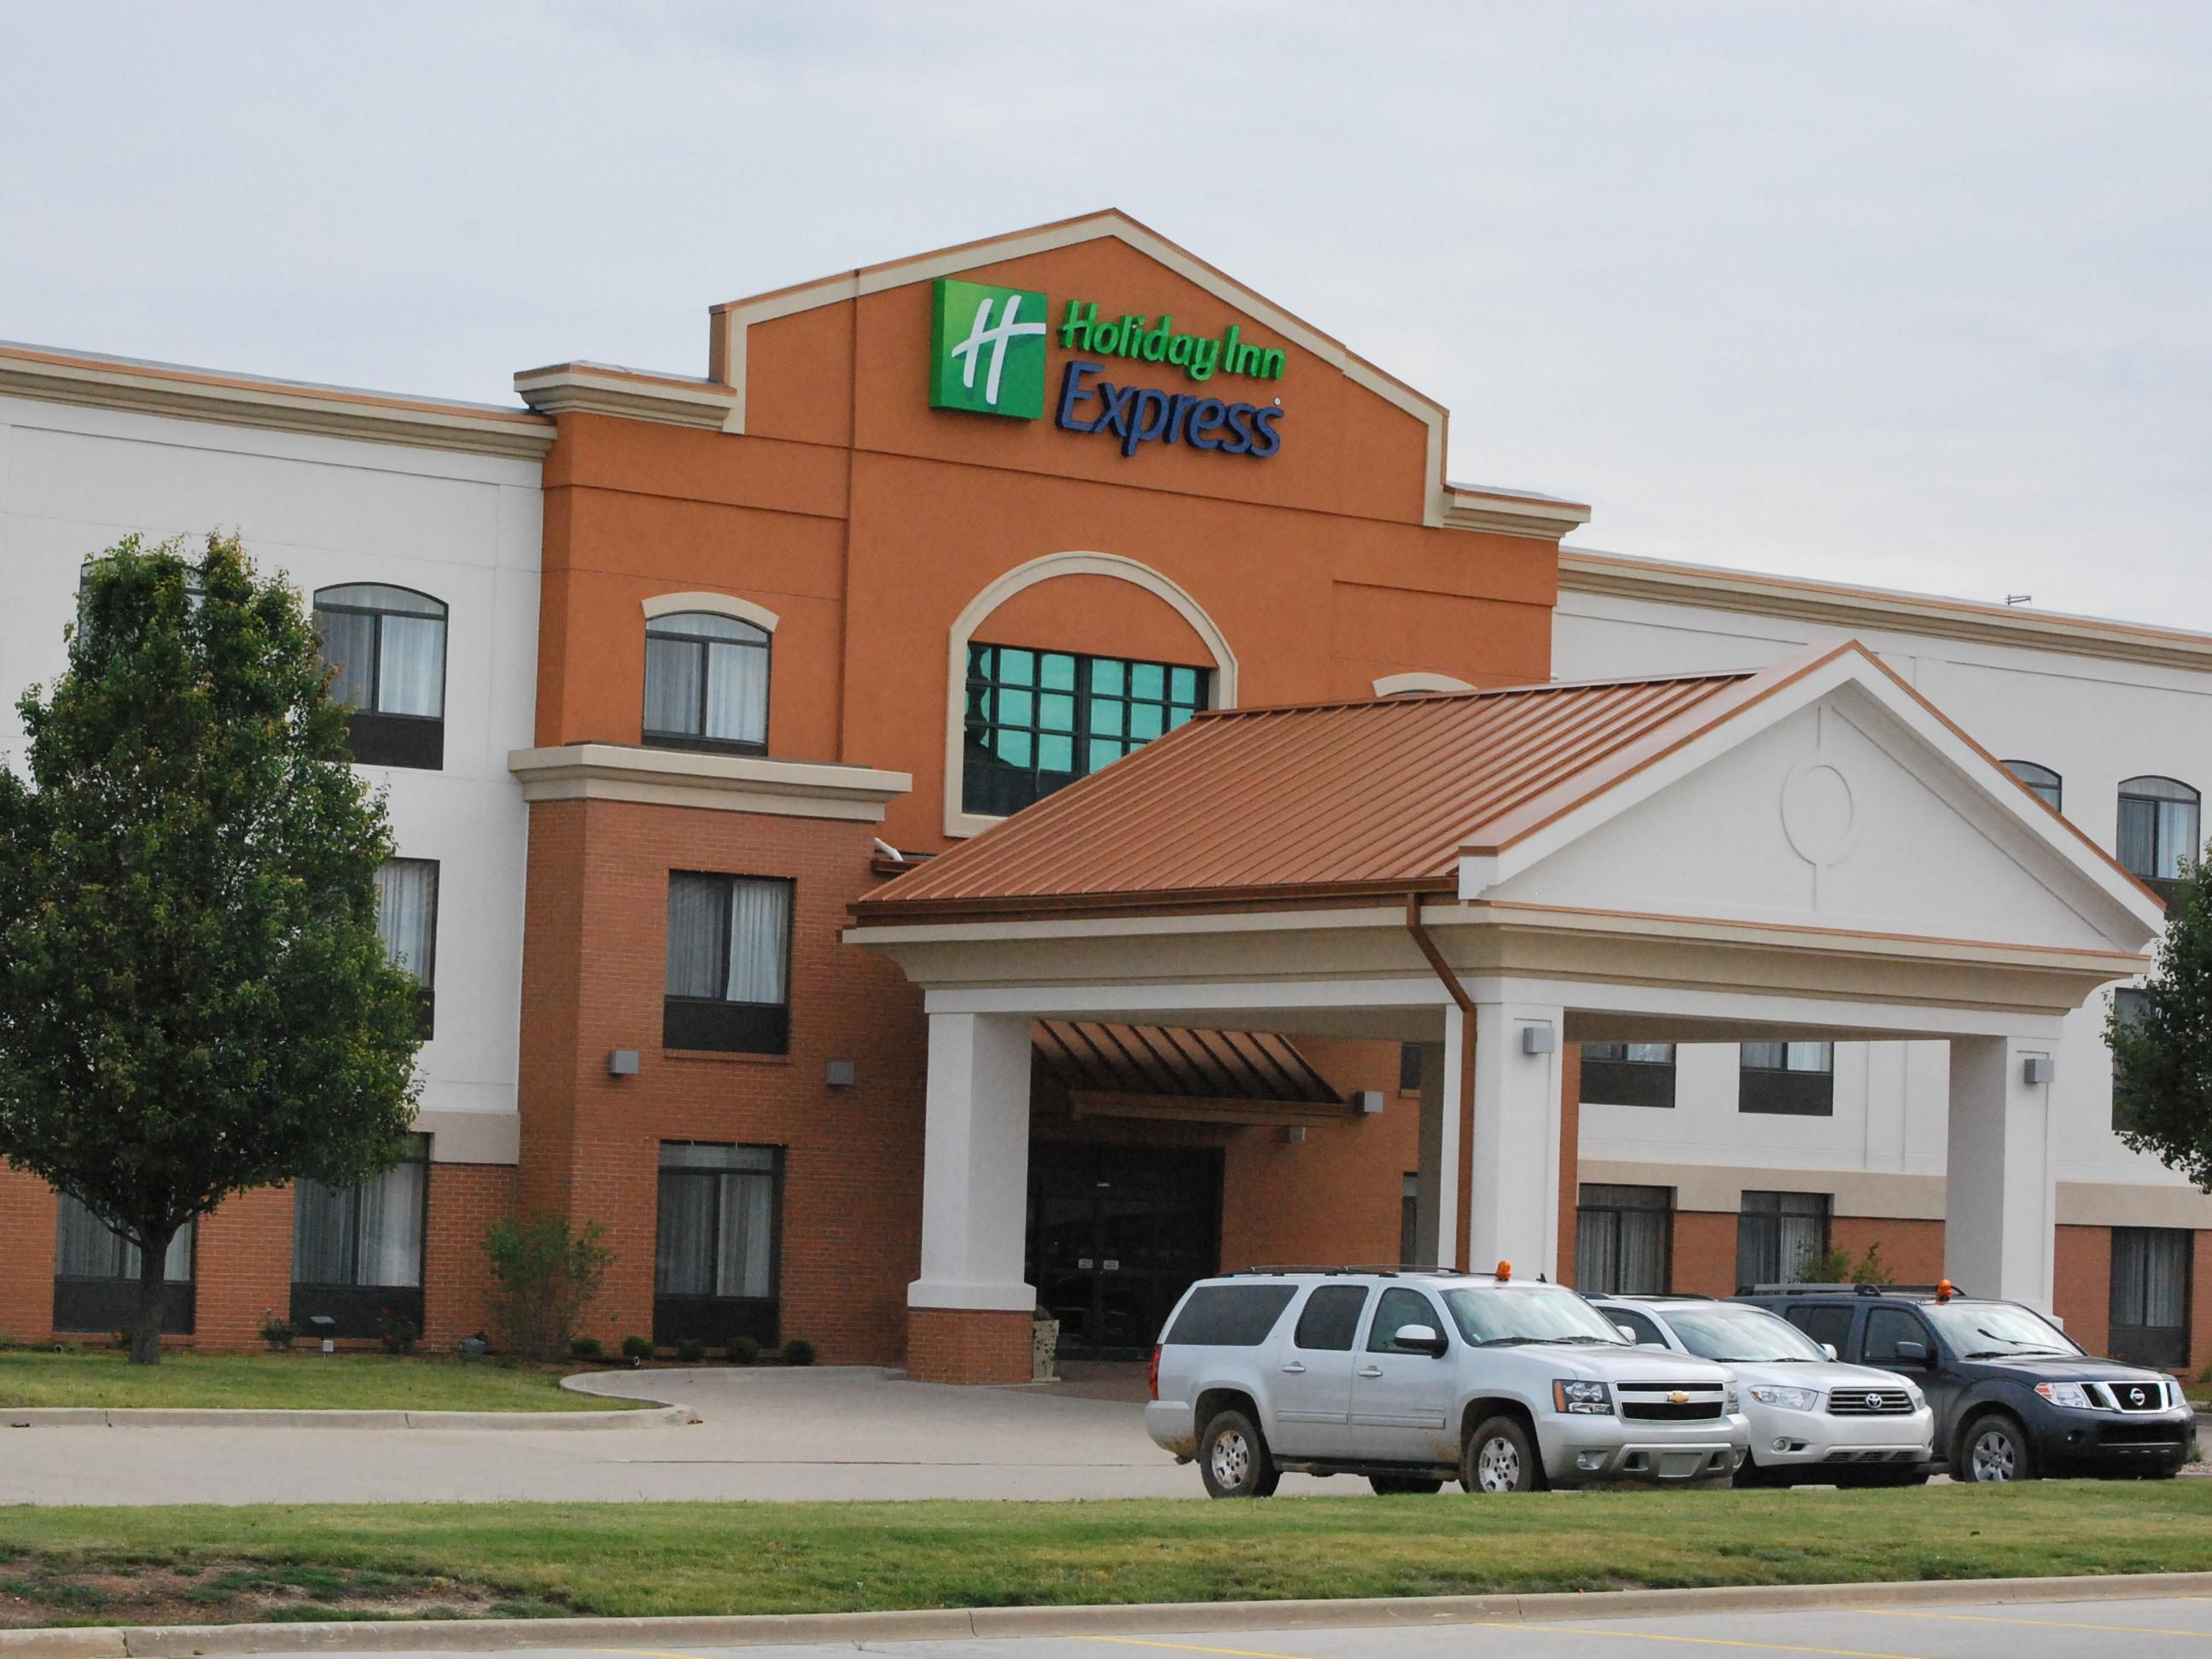 il abraham hotels springfield doubletree hotel by a states image in lincoln hilton united president